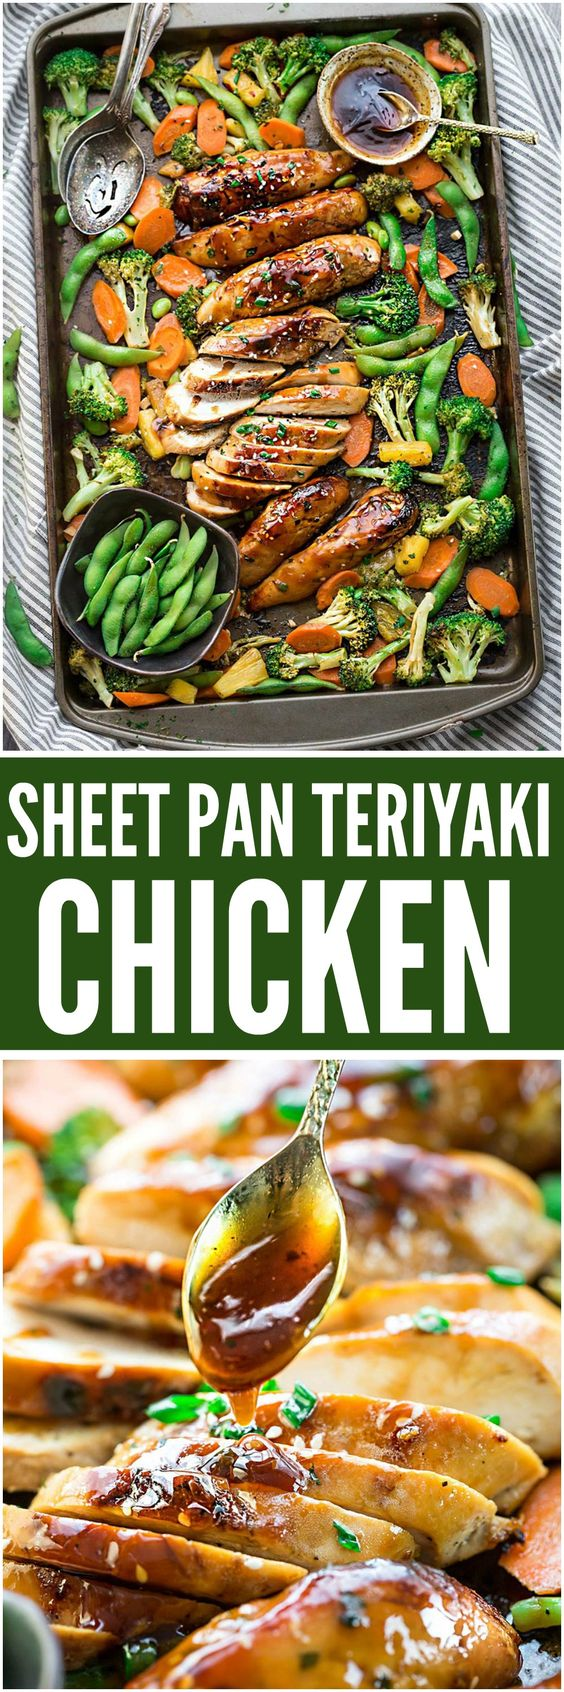 Sheet Pan Teriyaki Chicken with Vegetables Recipe via The Recipe Critic - This is an easy meal perfect for busy weeknights. Best of all, it's made entirely in one pan with tender chicken, crispy veggies with the most flavorful sweet and tangy Asian sauce. - The BEST Sheet Pan Suppers Recipes - Easy and Quick Family Lunch and Simple Dinner Meal Ideas using only ONE PAN! #sheetpansuppers #sheetpanrecipes #sheetpandinners #onepanmeals #healthyrecipes #mealprep #easyrecipes #healthydinners #healthysuppers #healthylunches #simplefamilymeals #simplefamilyrecipes #simplerecipes